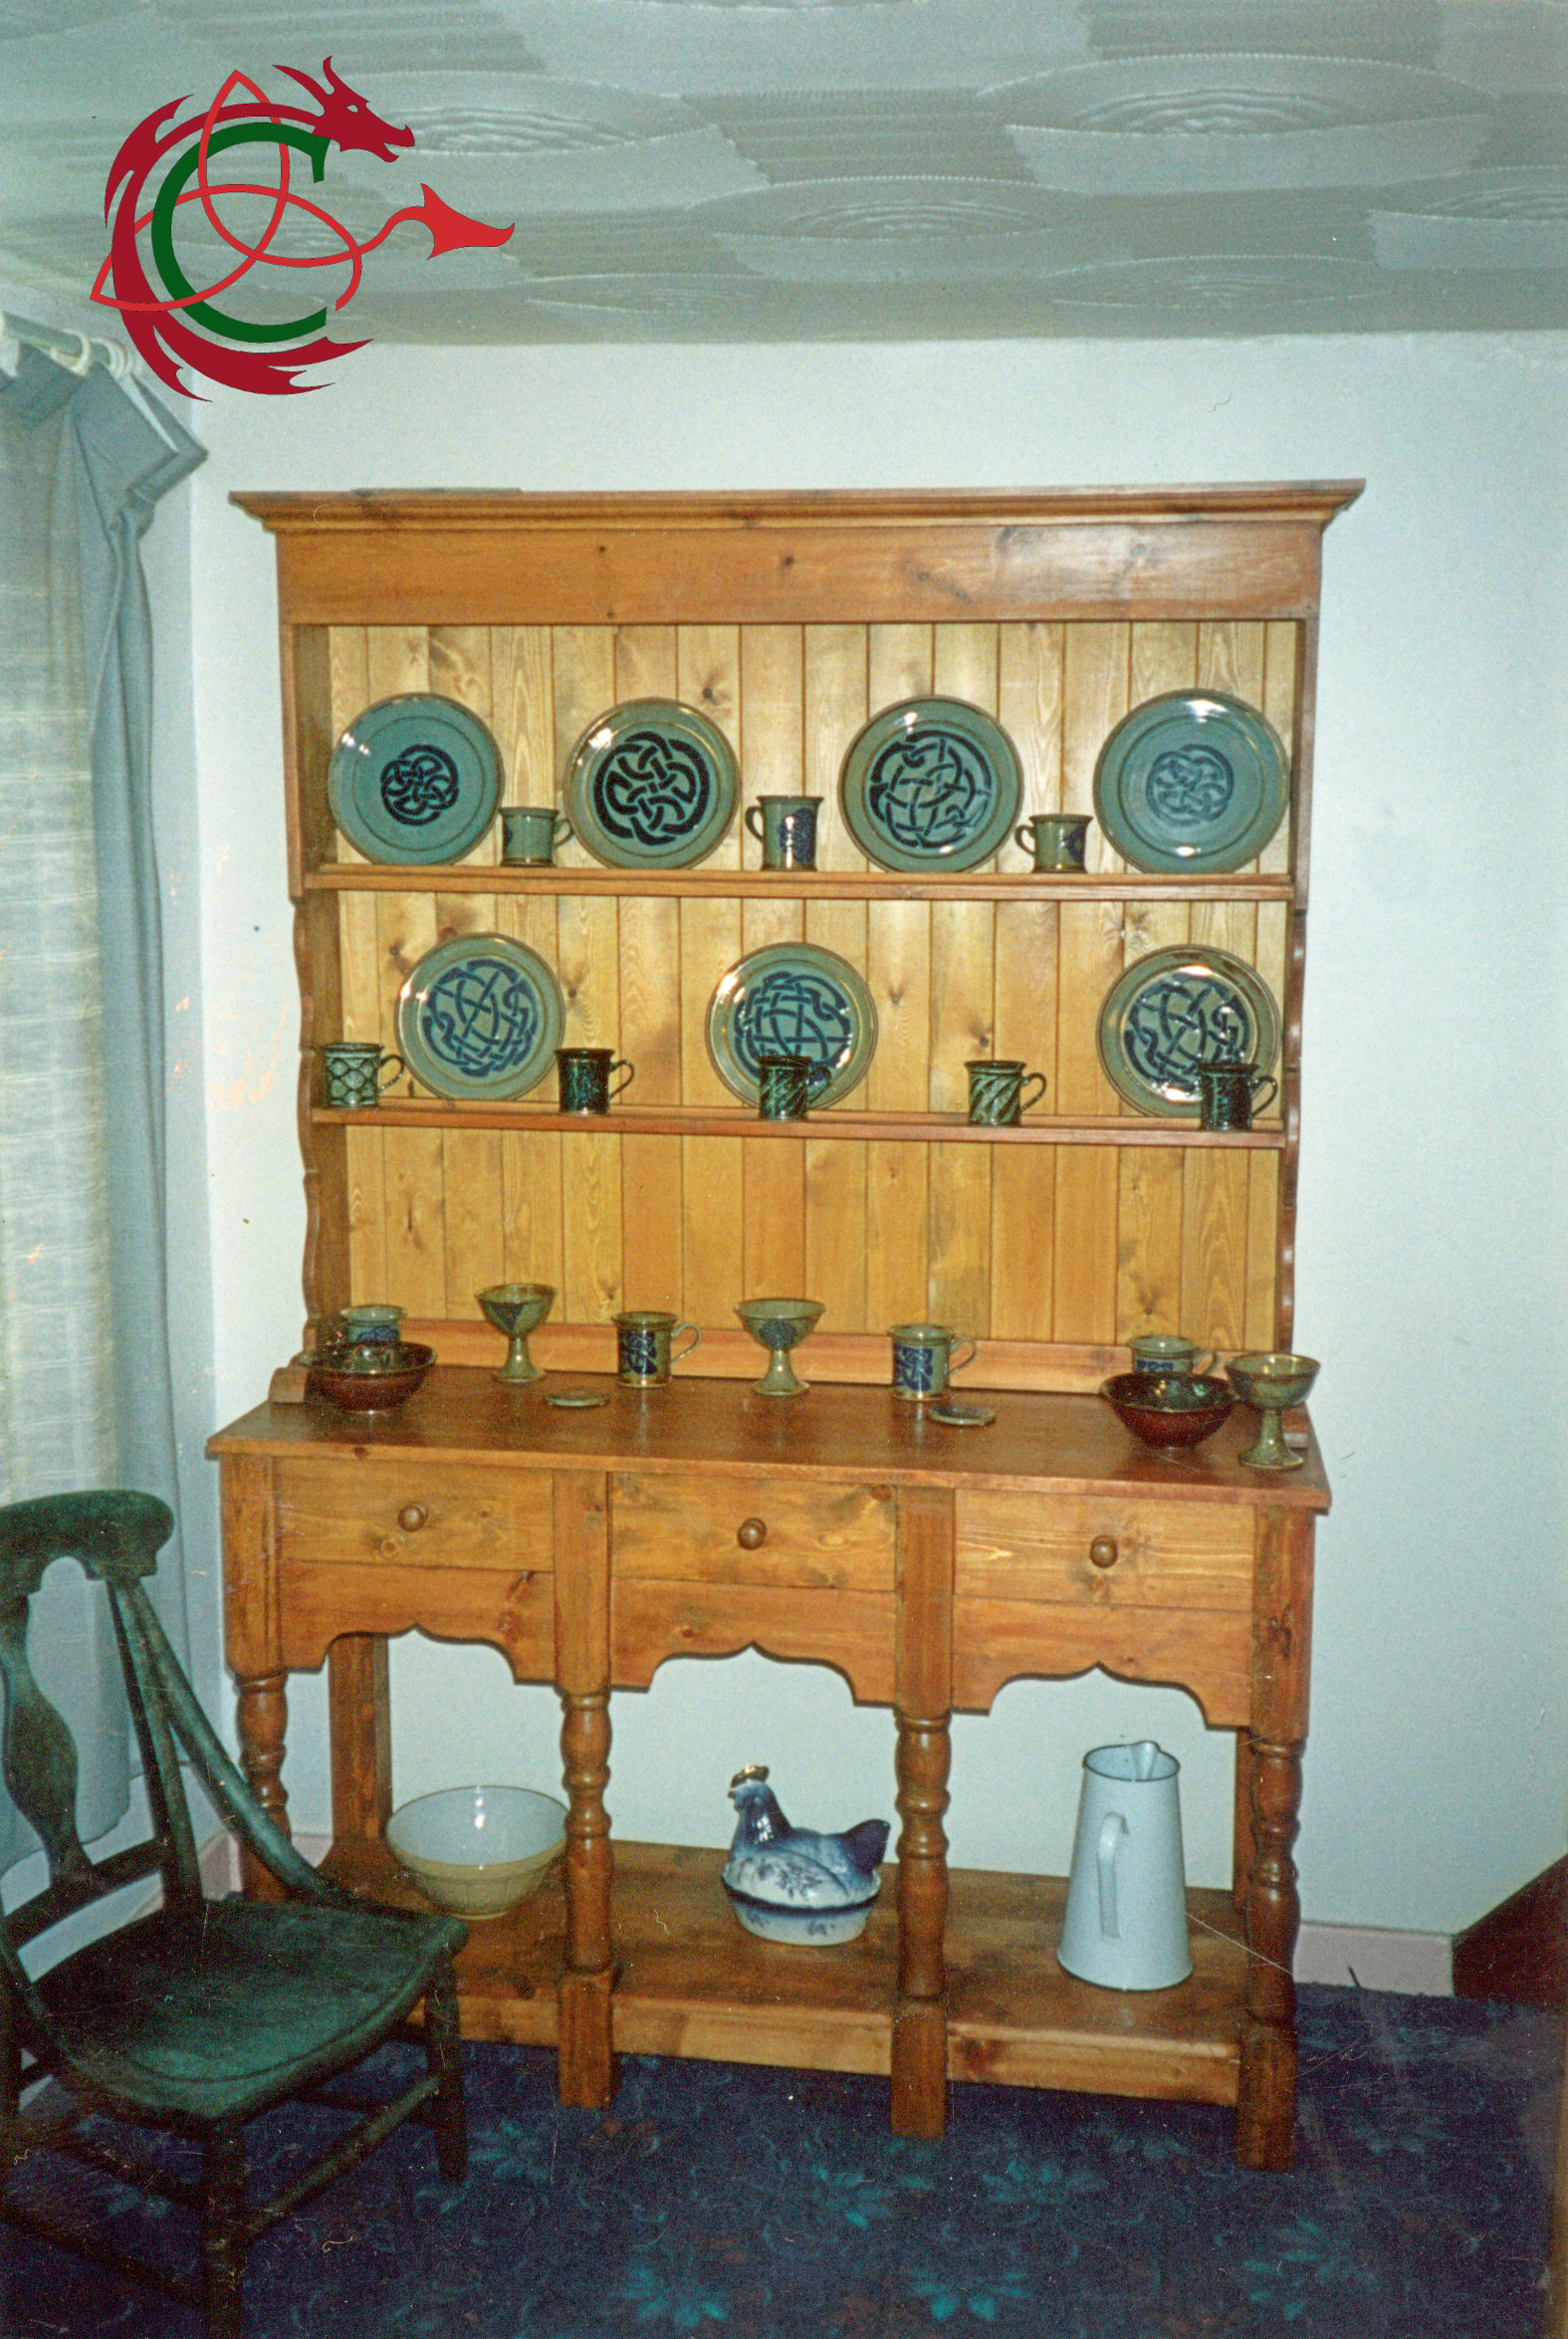 Welsh dresser, Cynon potboard, sideboard and dresser rack with turned legs, decorative scrollwork